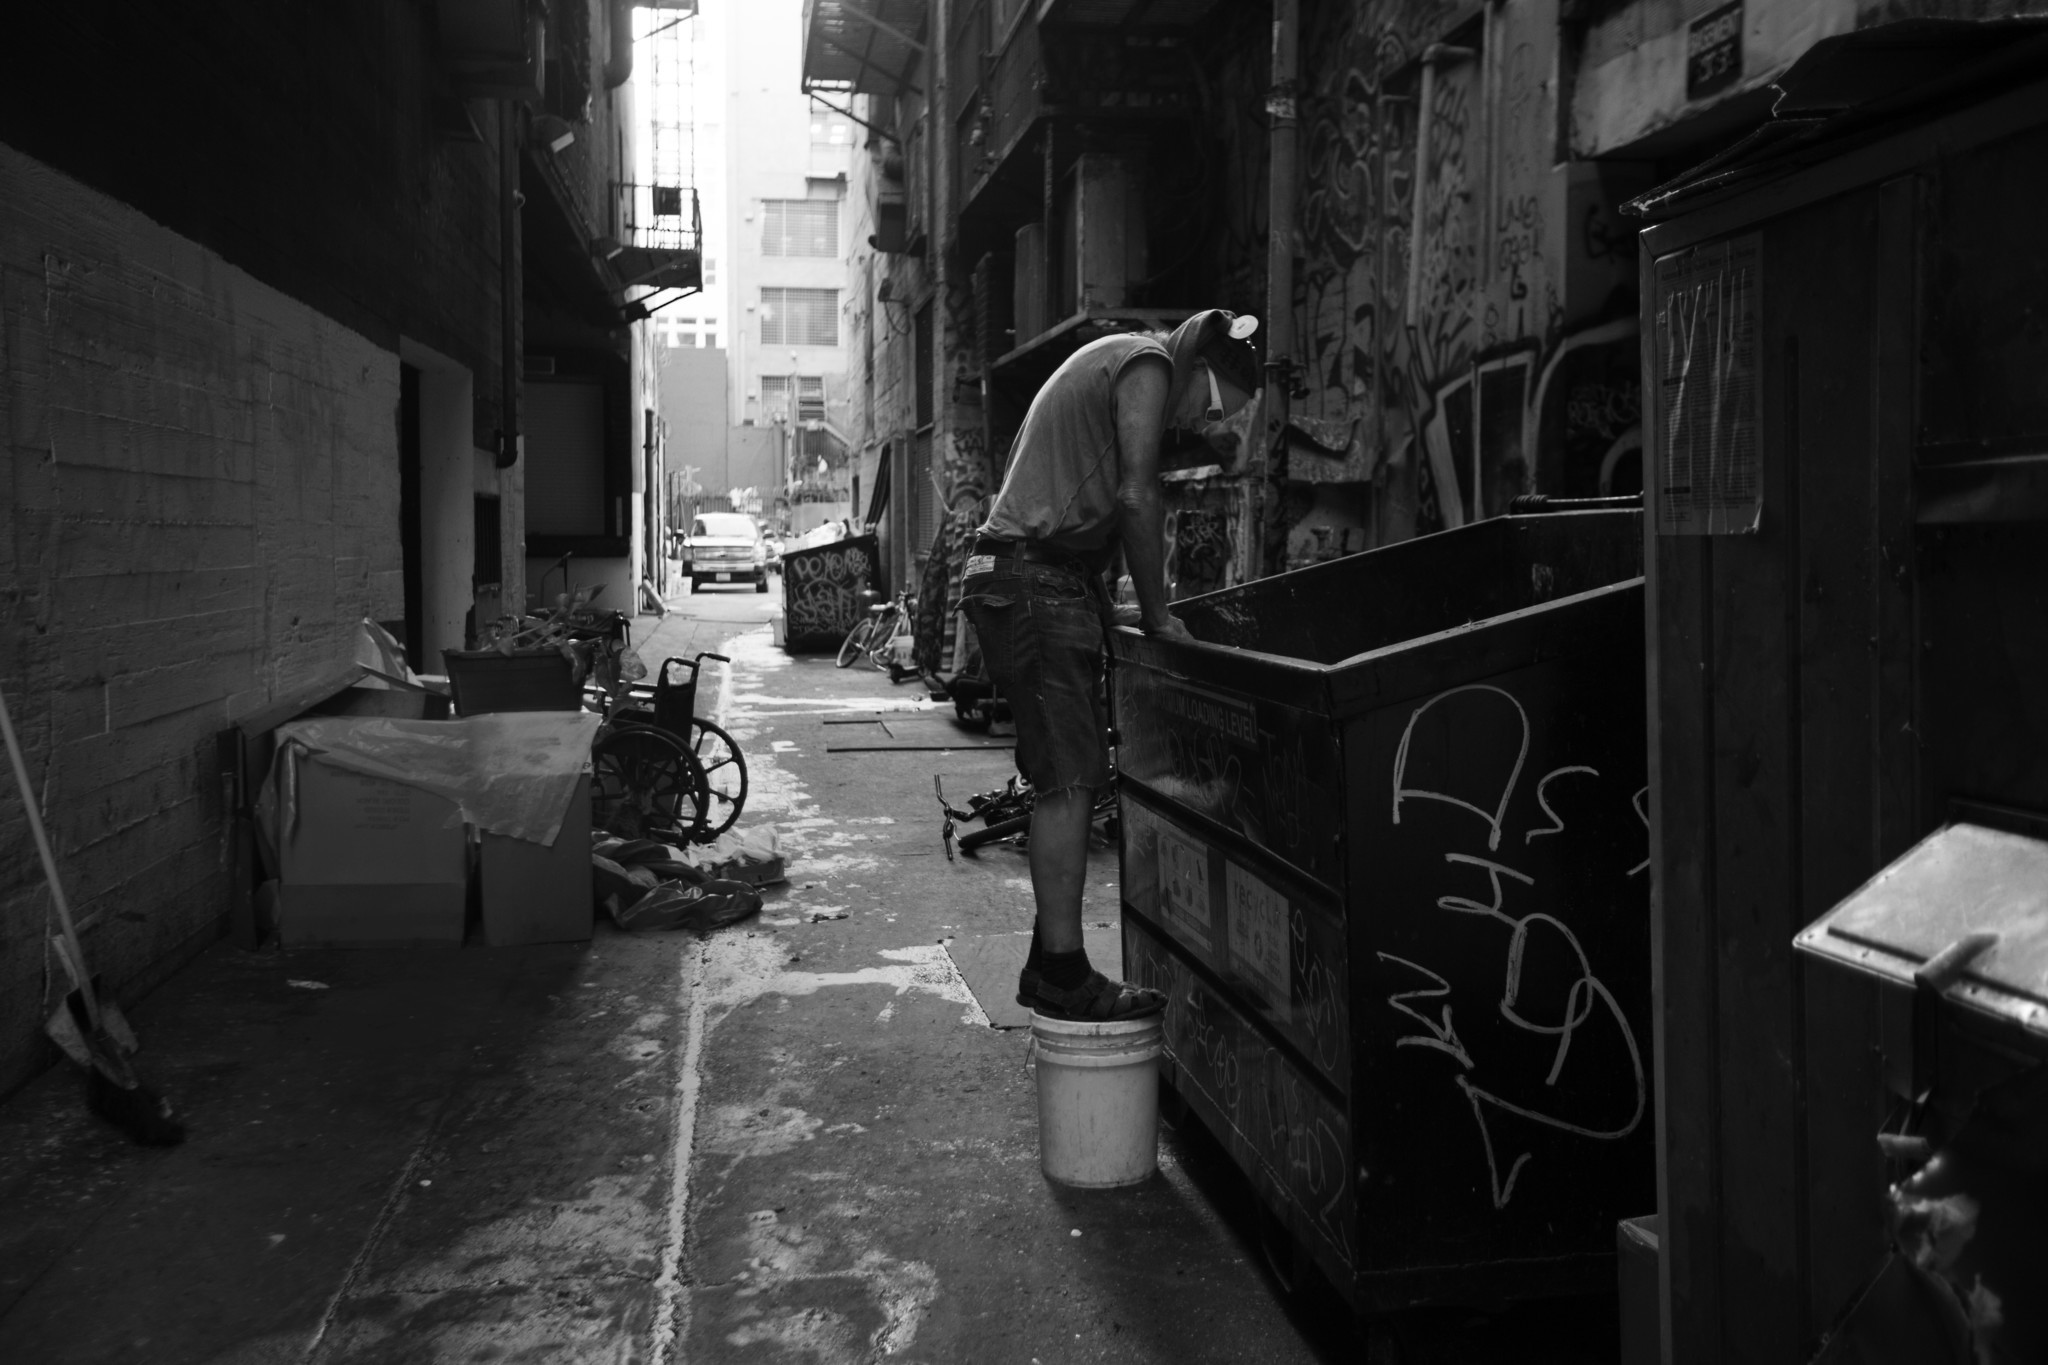 LOS ANGELES , CA NOVEMBER 17, 2017: A man climbs into the garbage bin in an alley in Los Angeles, CA